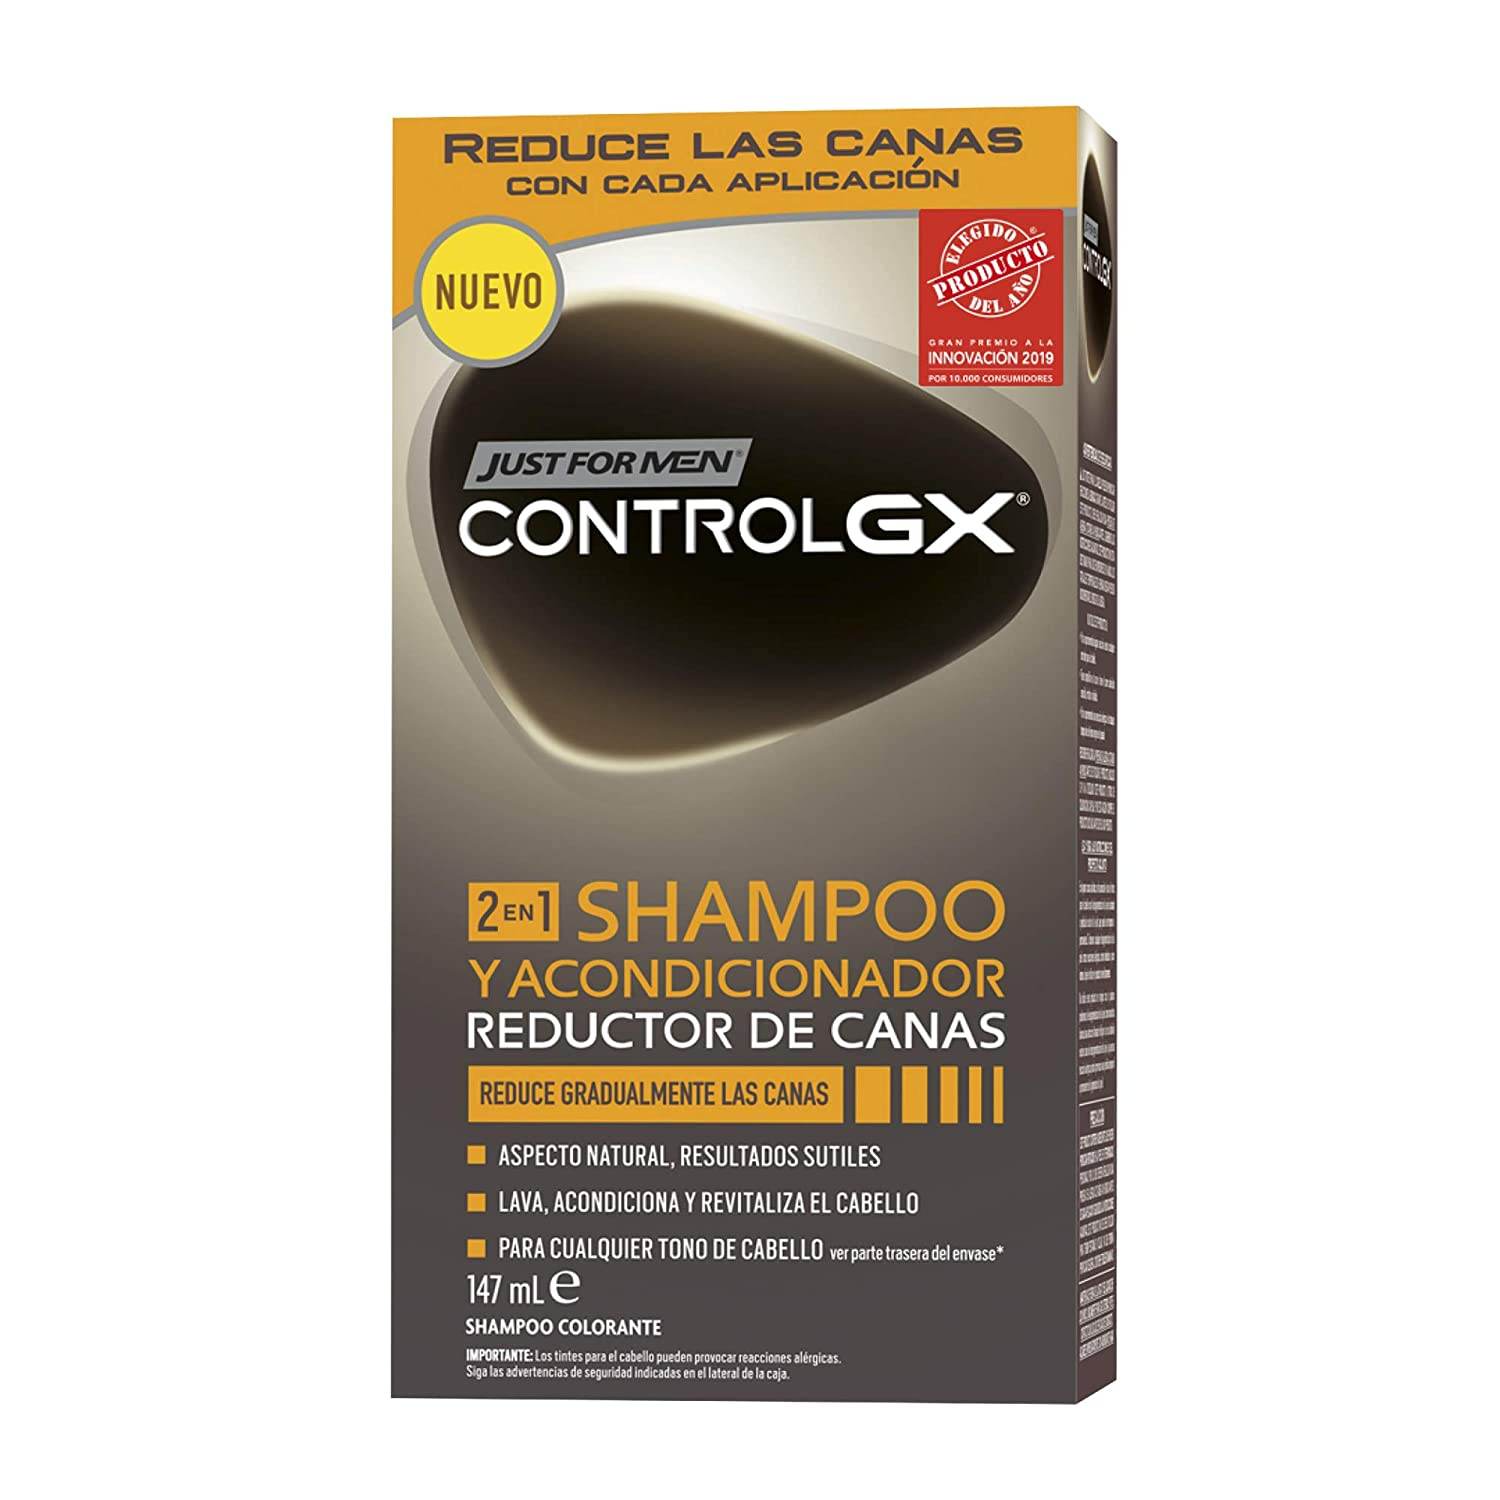 Just For Men, Control GX Tinte Pelo Reductor de Canas para Hombres, Champú y Acondicionador, Reduce Gradualmente las Canas, 147 ml